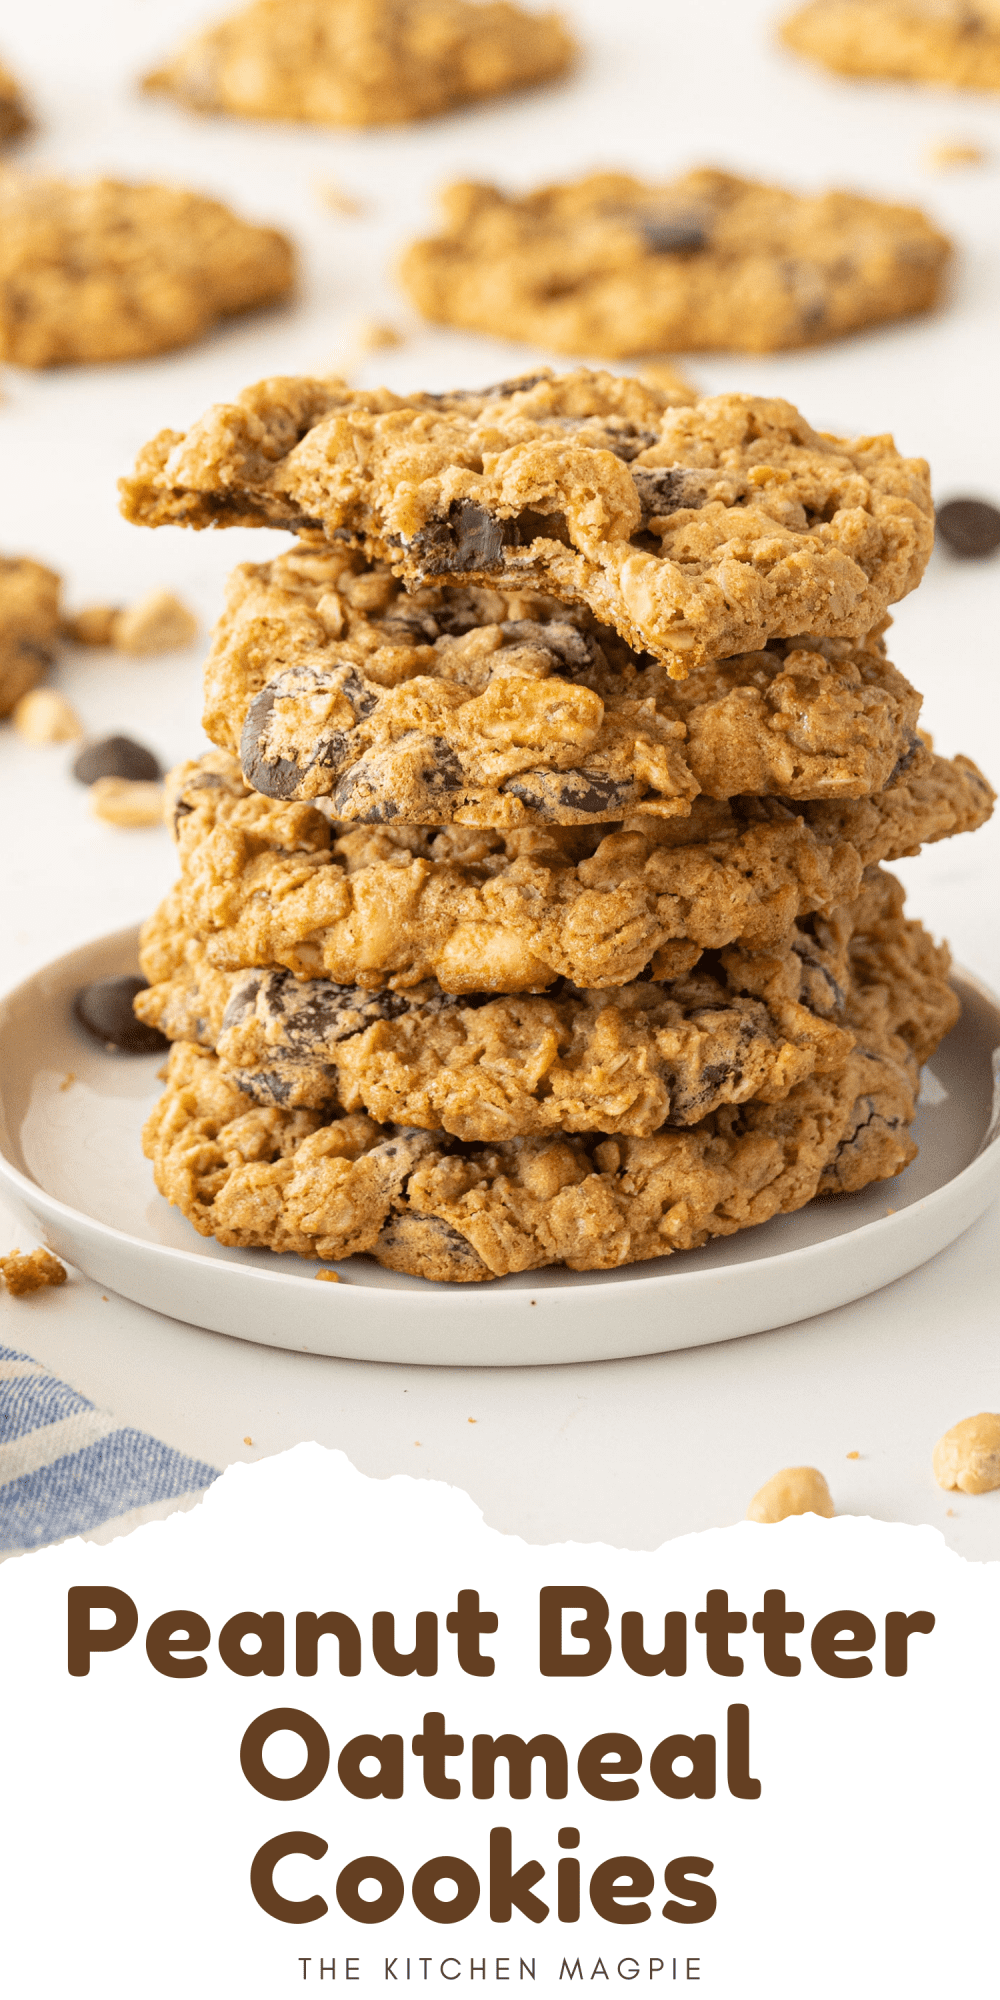 Peanut Butter Oatmeal Cookies loaded with chocolate chips and salty peanuts for a fantastic cookie treat!